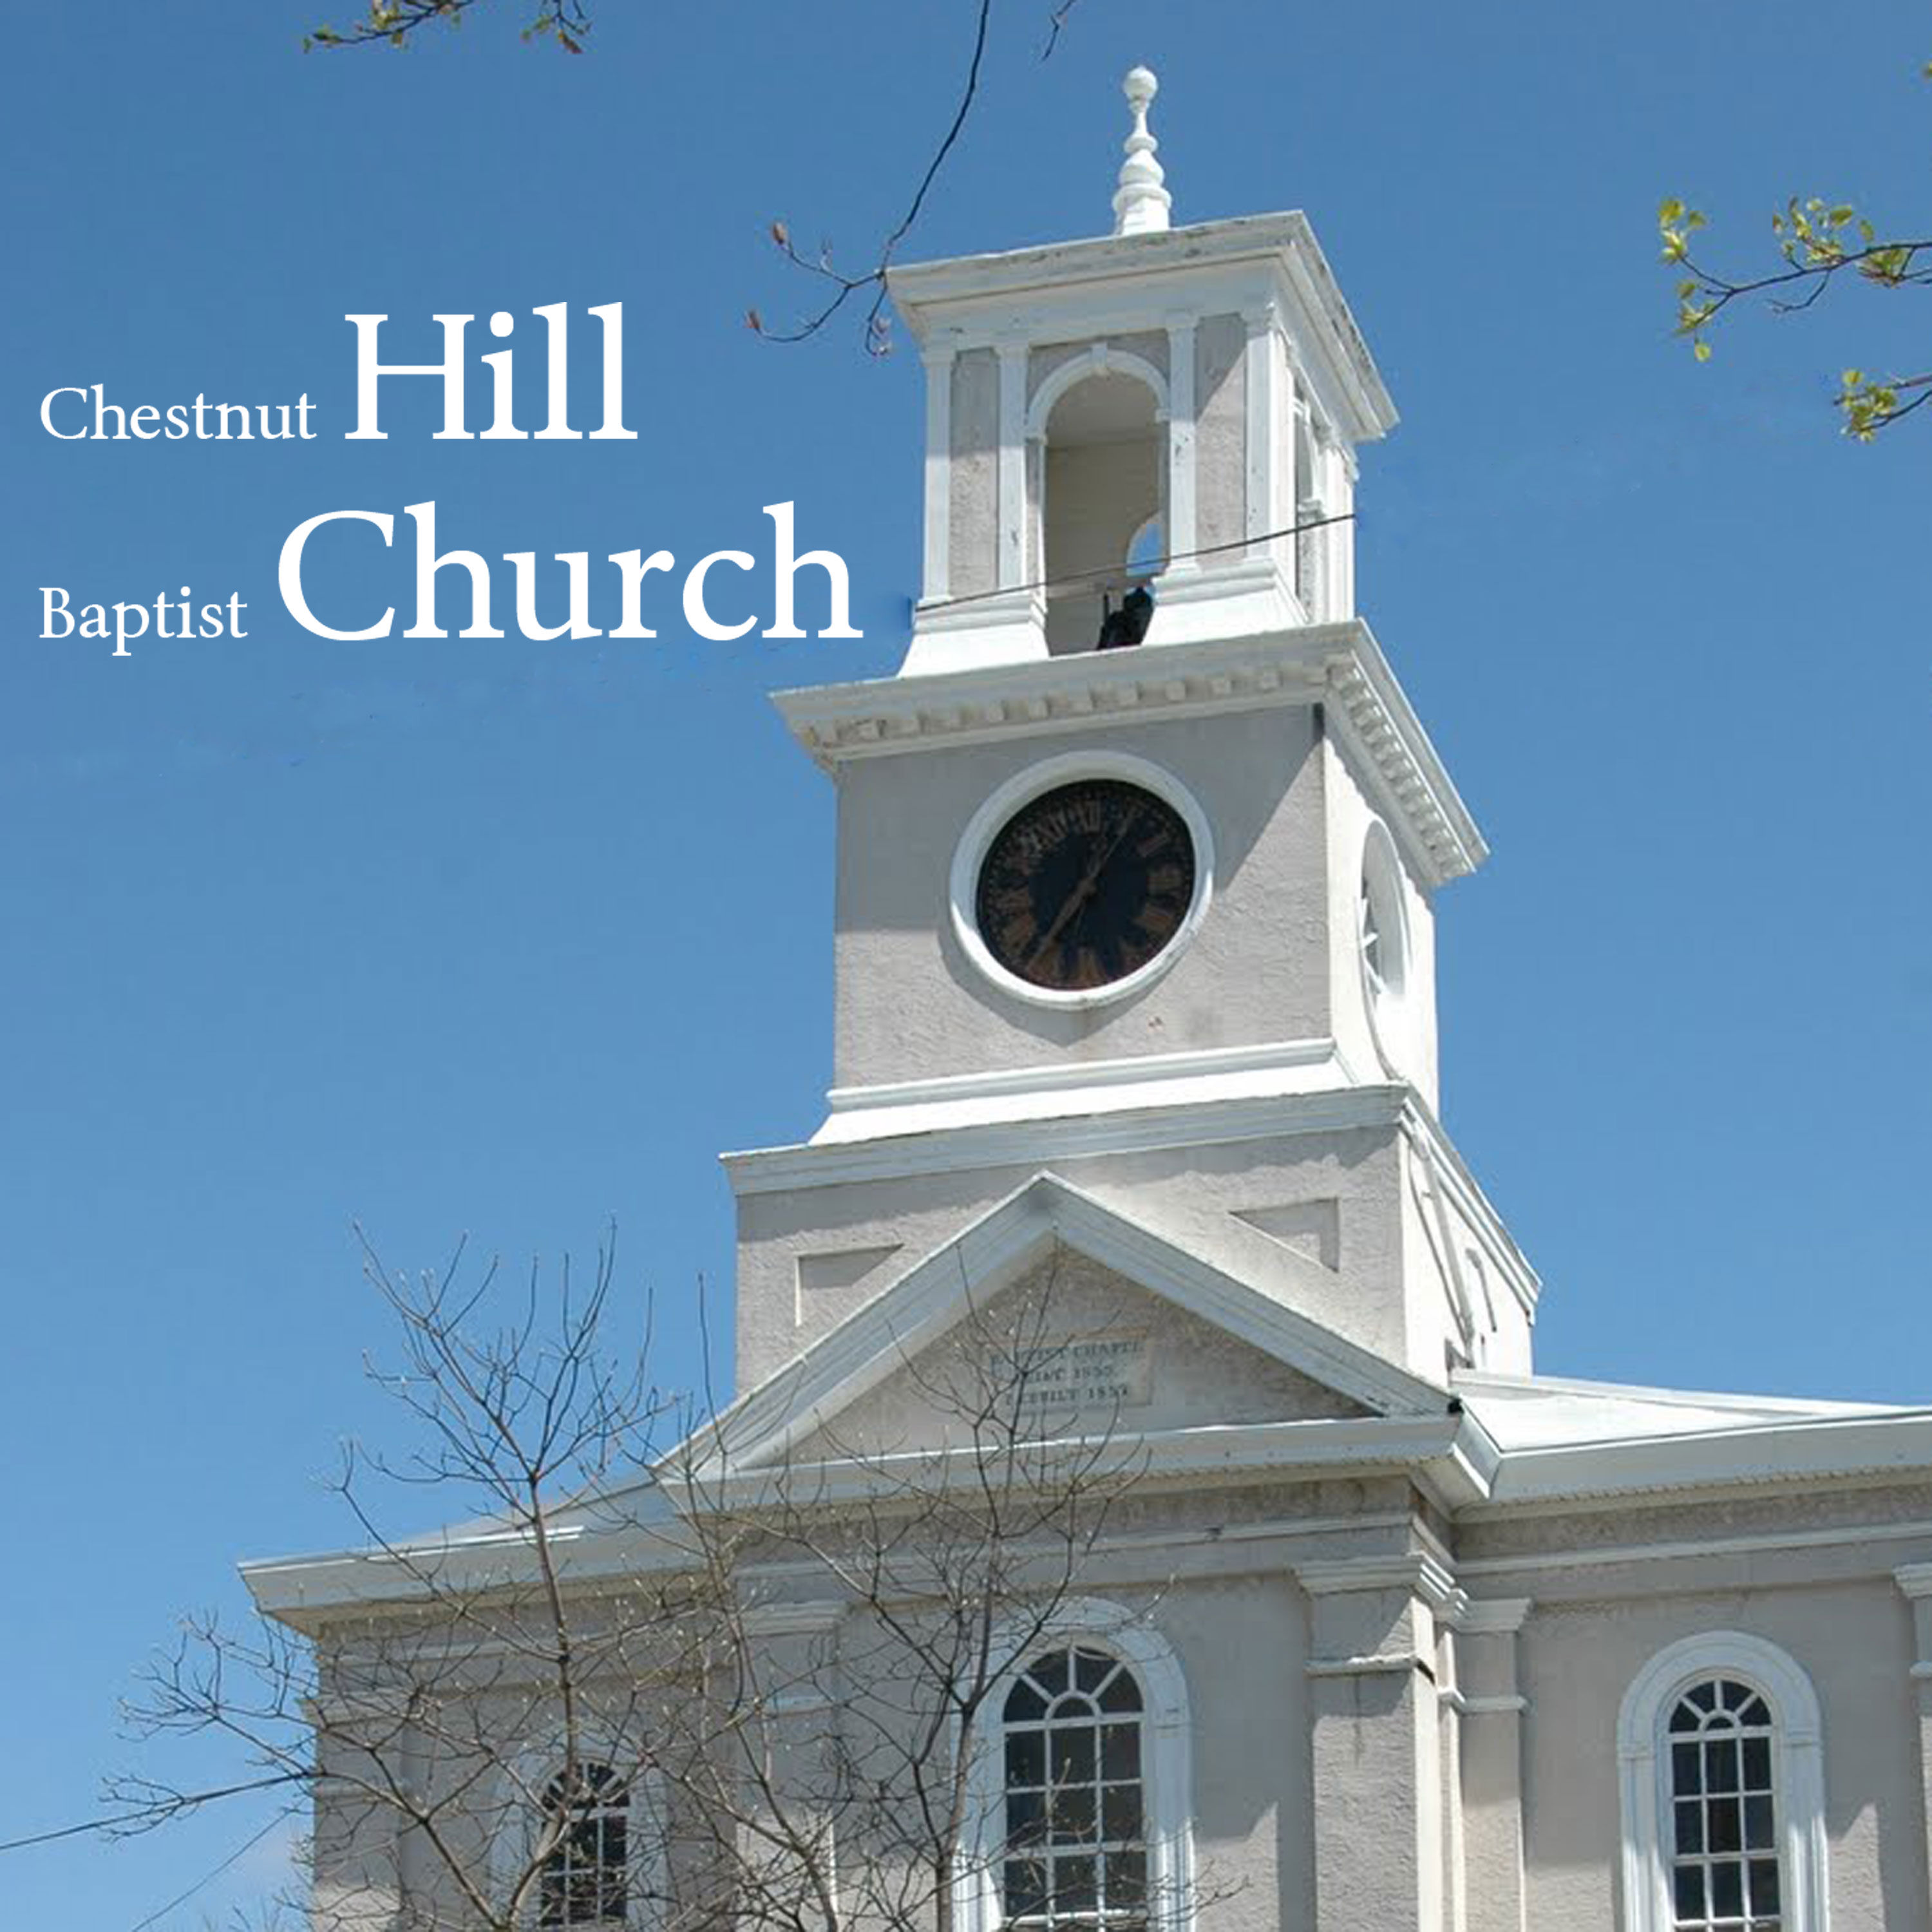 Chestnut Hill Baptist Church